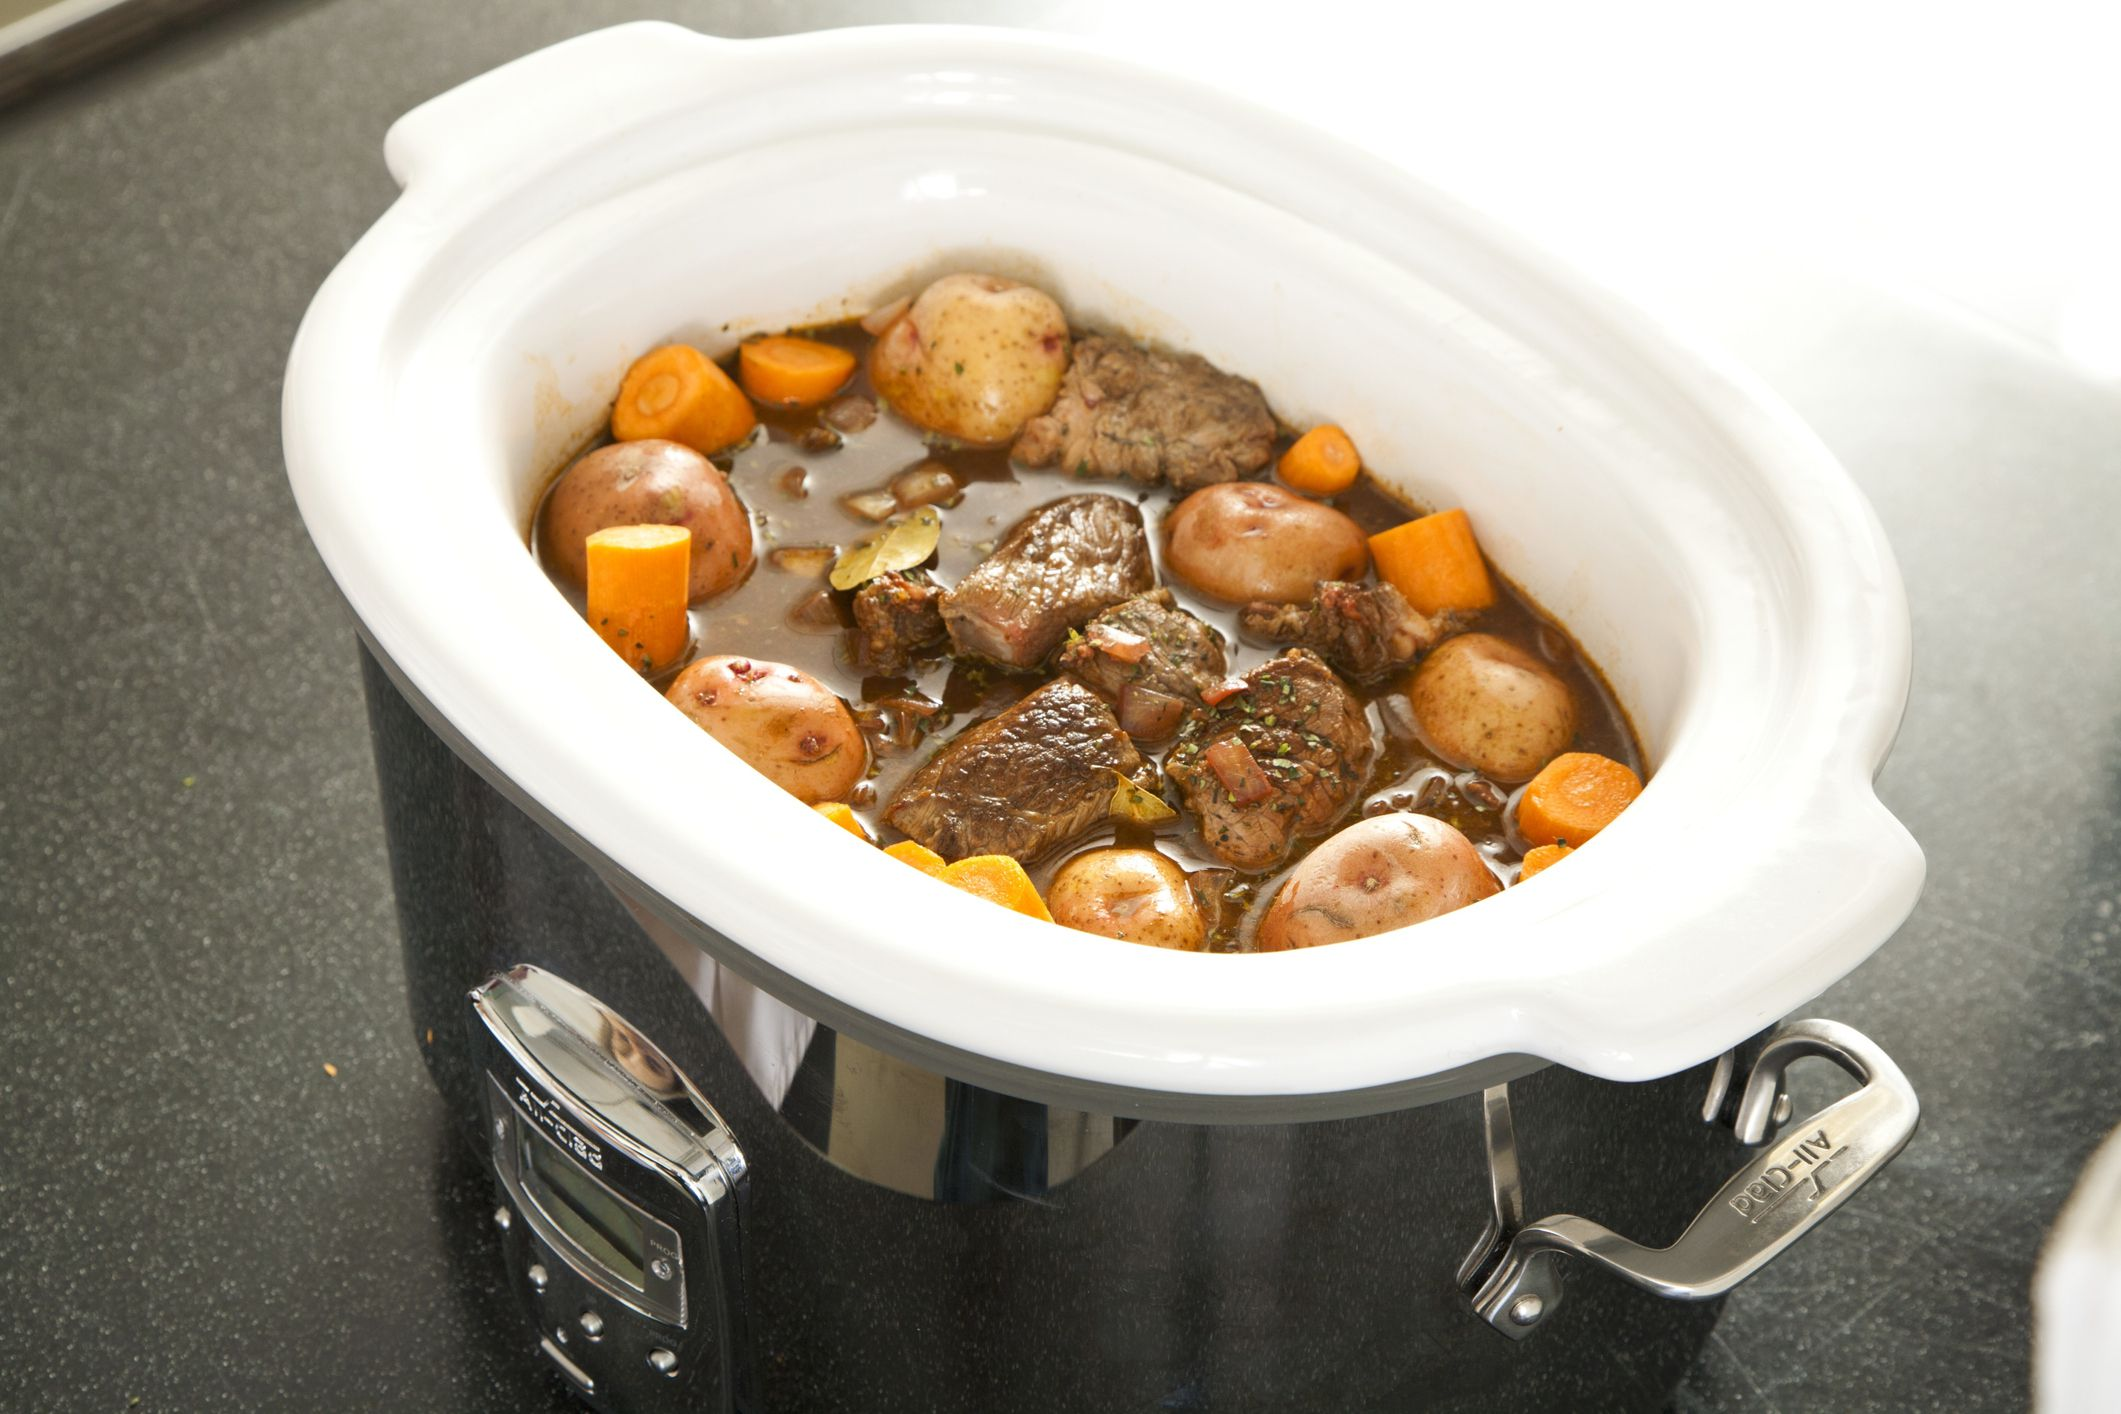 The 7 best slow cookers and crock pots to buy in 2018 for Tp fish market